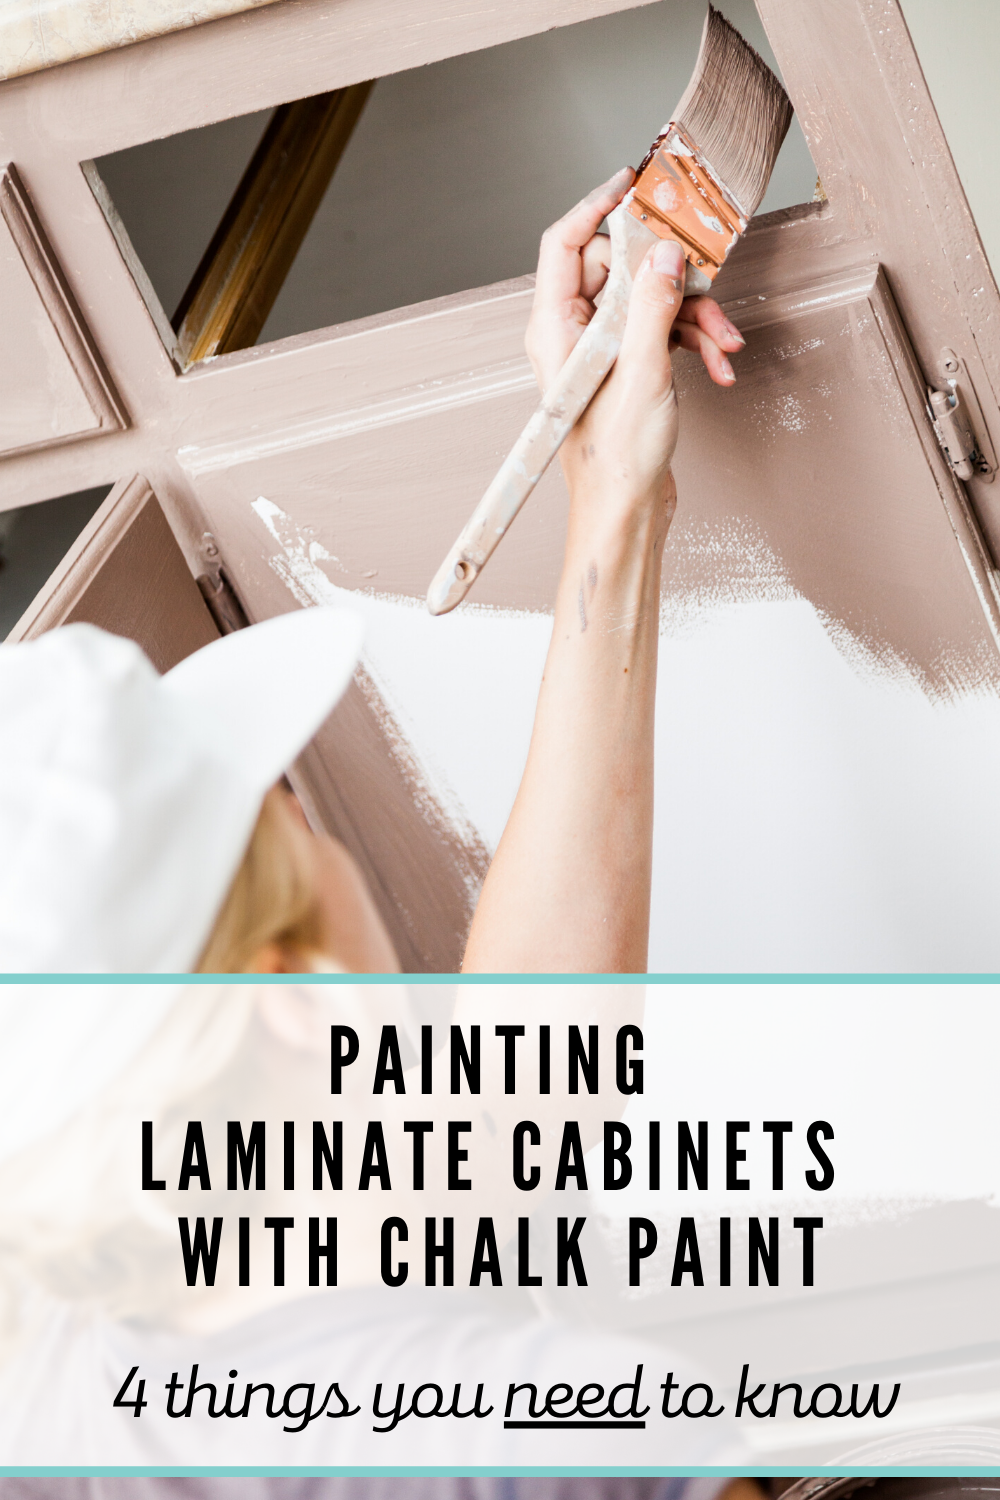 How To Paint Laminate Cabinets With Chalk Paint Kate Decorates In 2020 Painting Laminate Cabinets Painting Laminate Laminate Cabinets